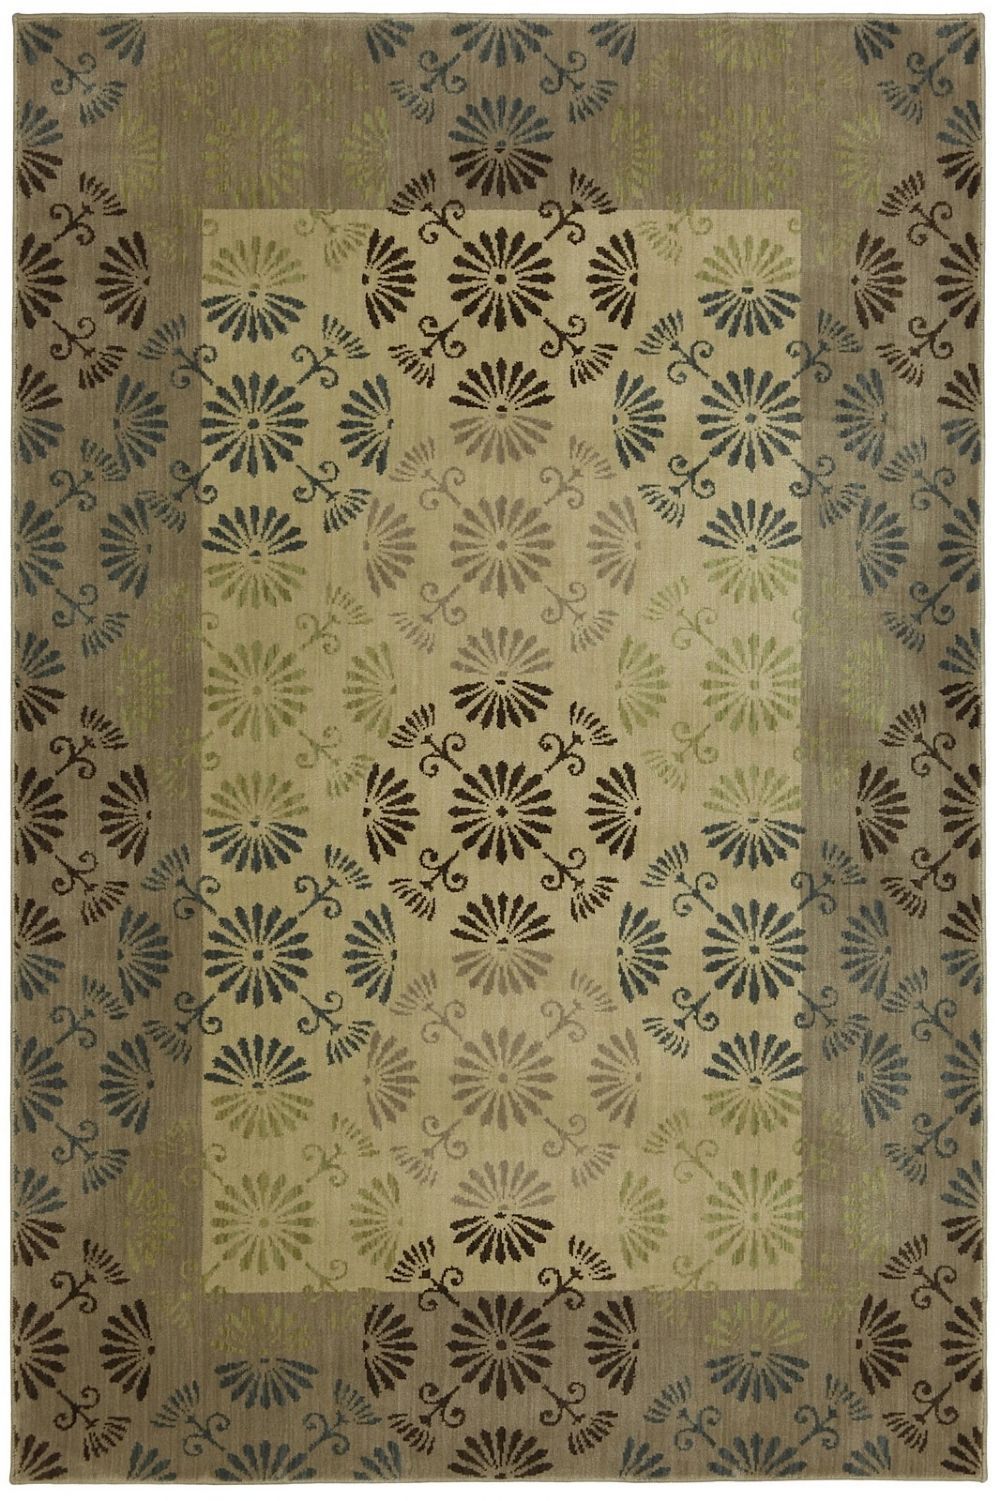 mohawk reflections bordered transitional area rug collection